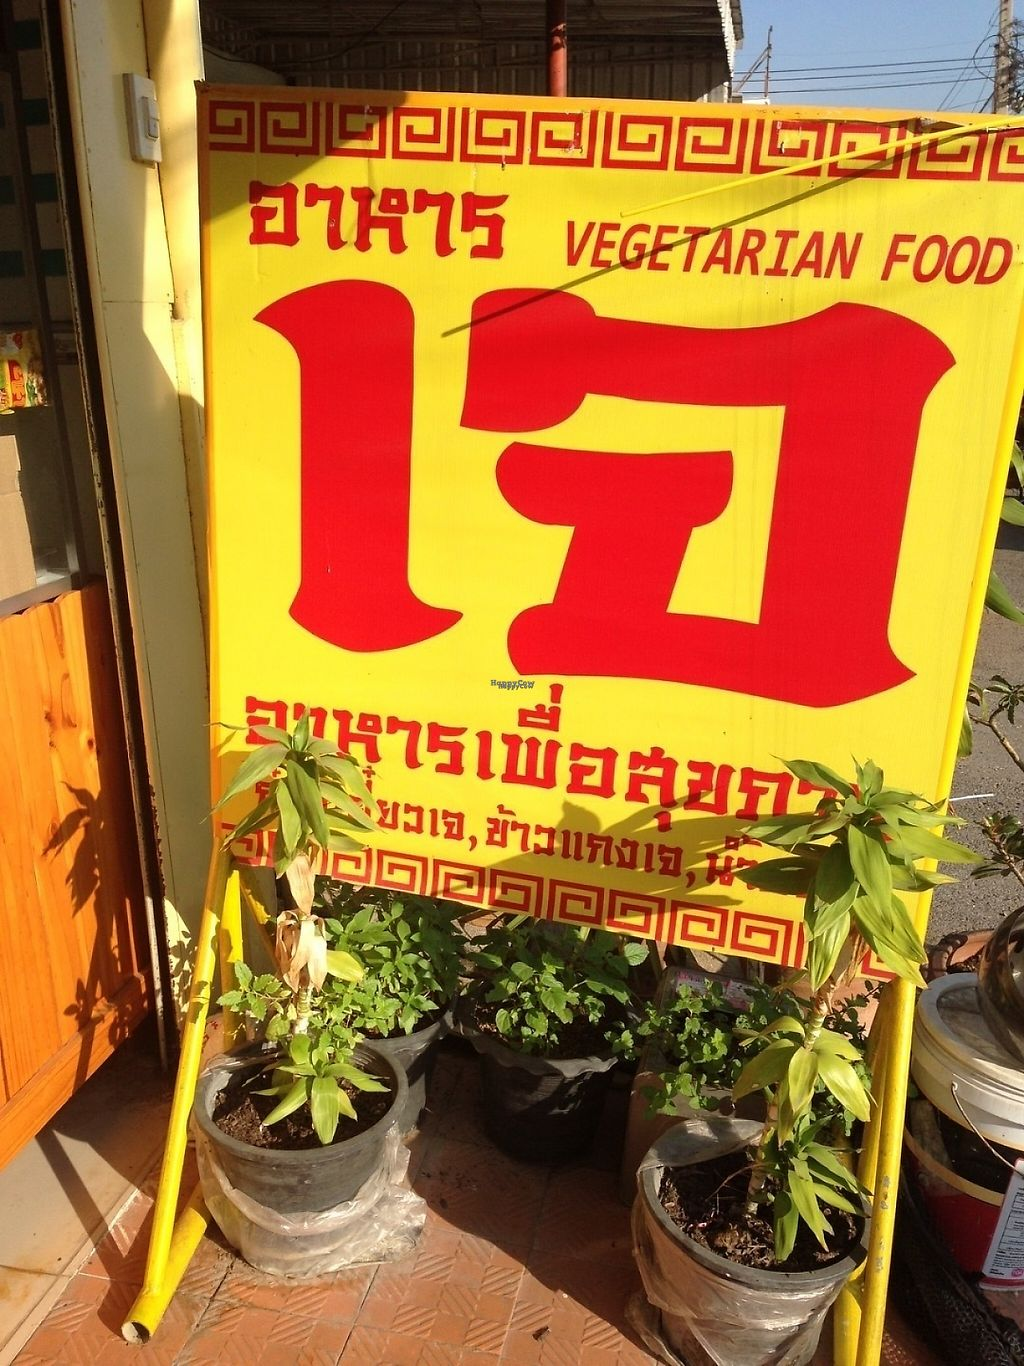 """Photo of Vegetarian Food  by <a href=""""/members/profile/Tofulicious"""">Tofulicious</a> <br/>Sign on approach  <br/> February 1, 2017  - <a href='/contact/abuse/image/86468/220657'>Report</a>"""